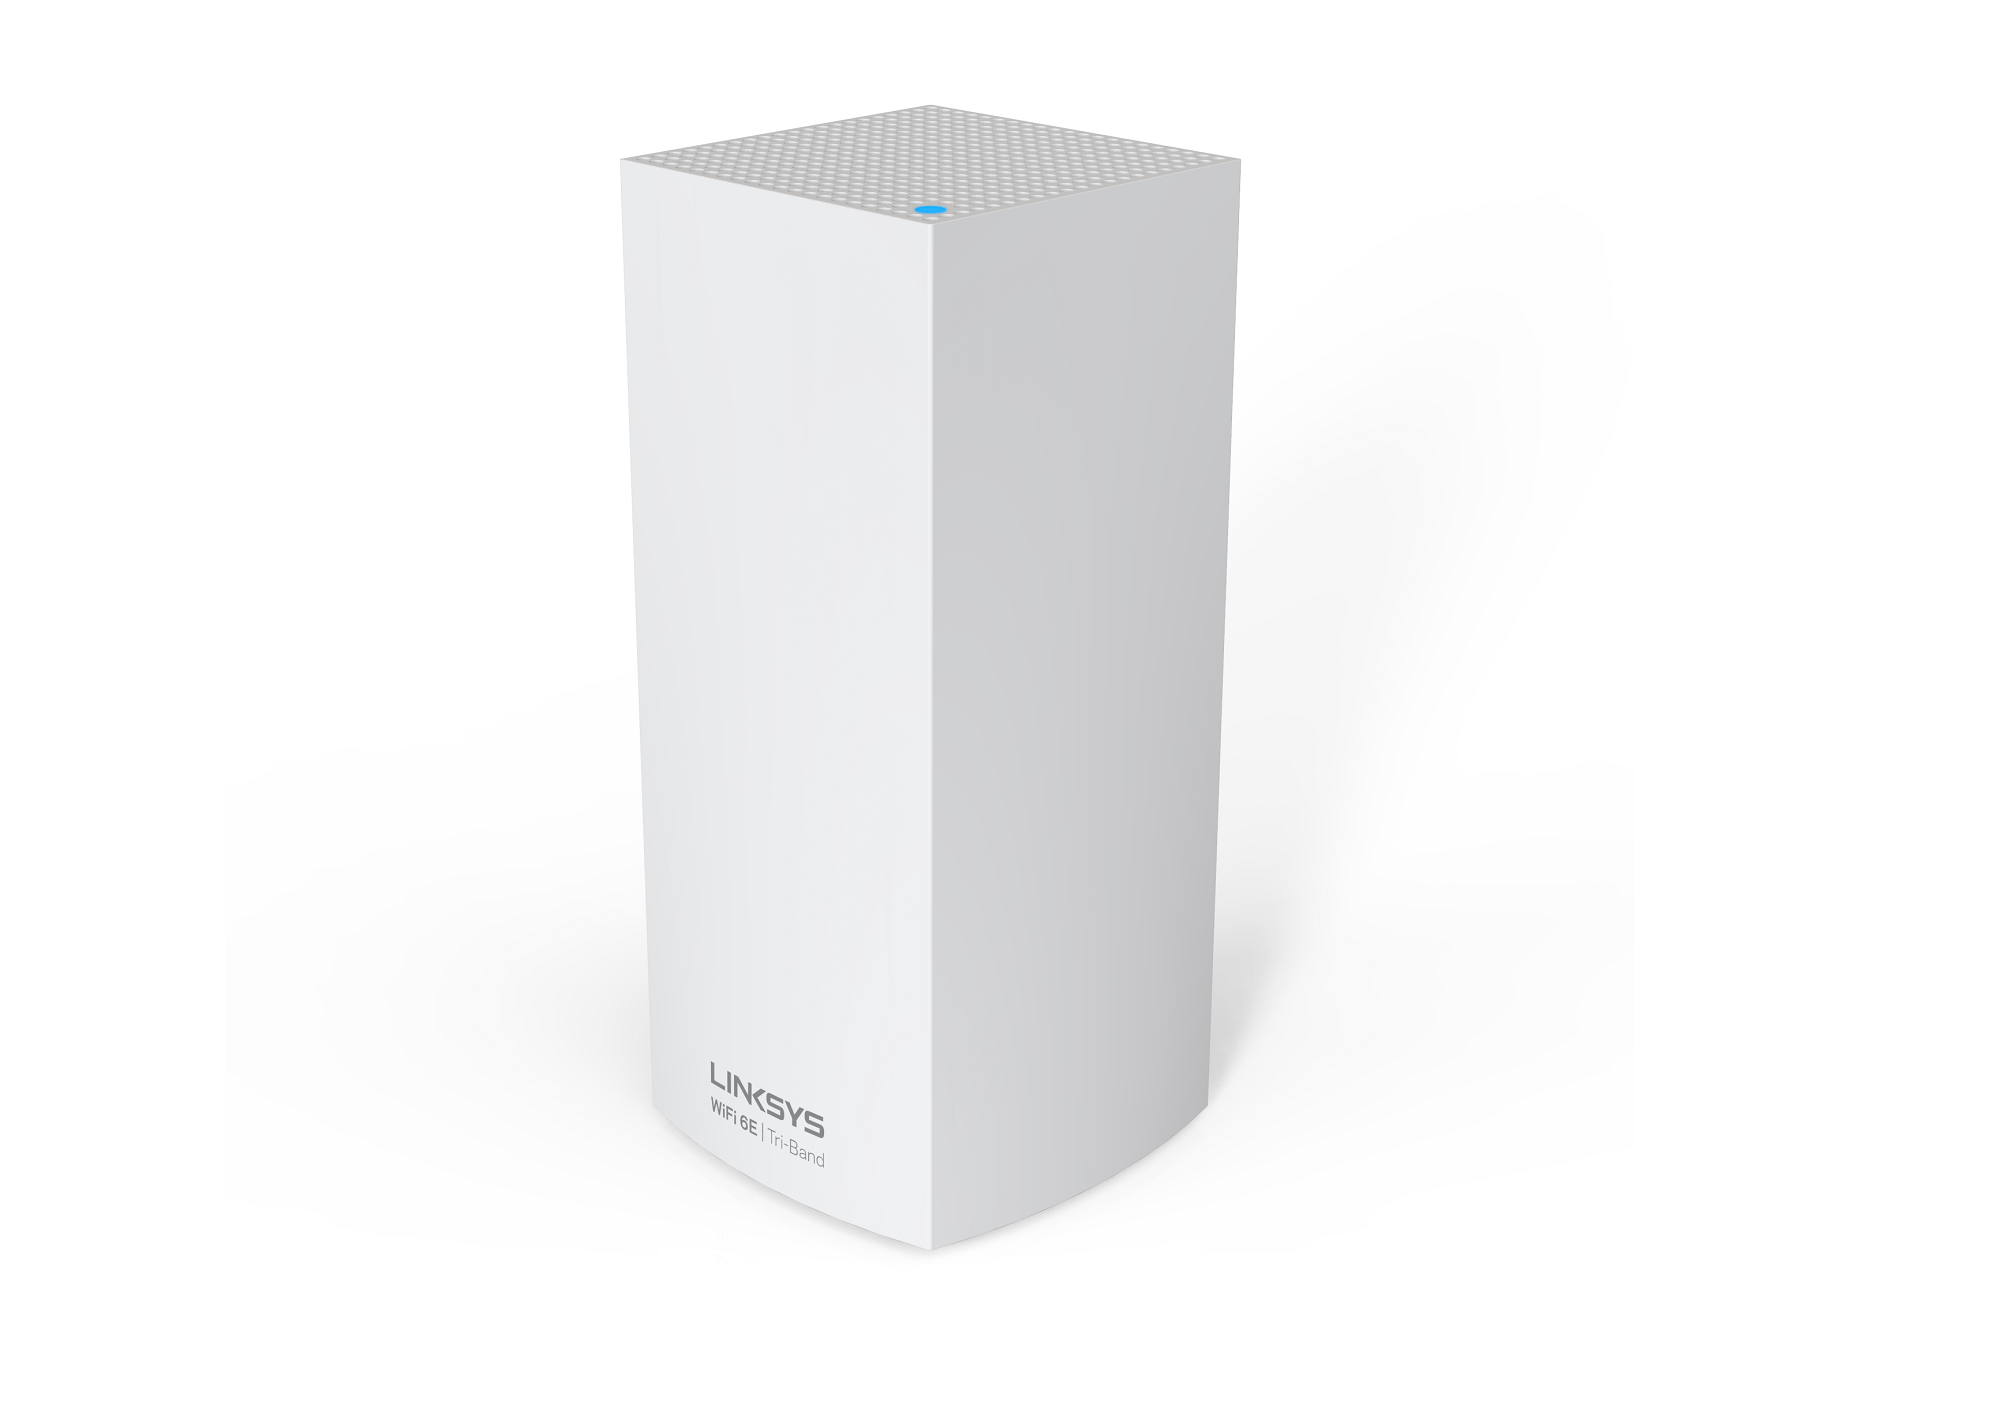 Linksys Velop AXE8400